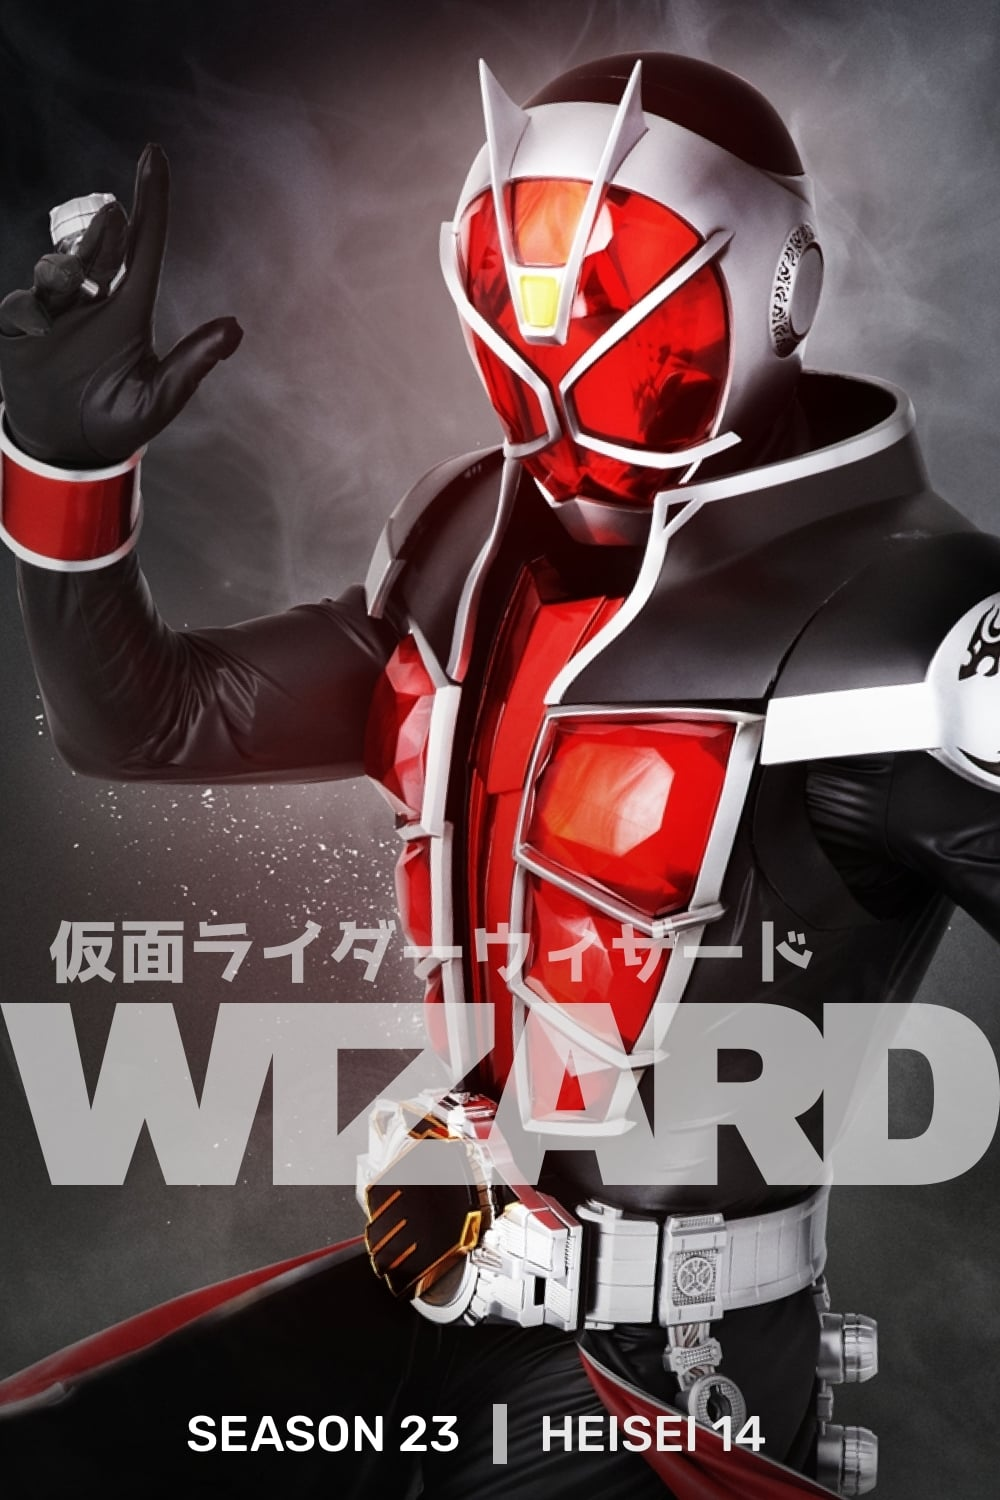 Kamen Rider - Season 21 Episode 30 : King, Panda, Memory of Flame Season 23